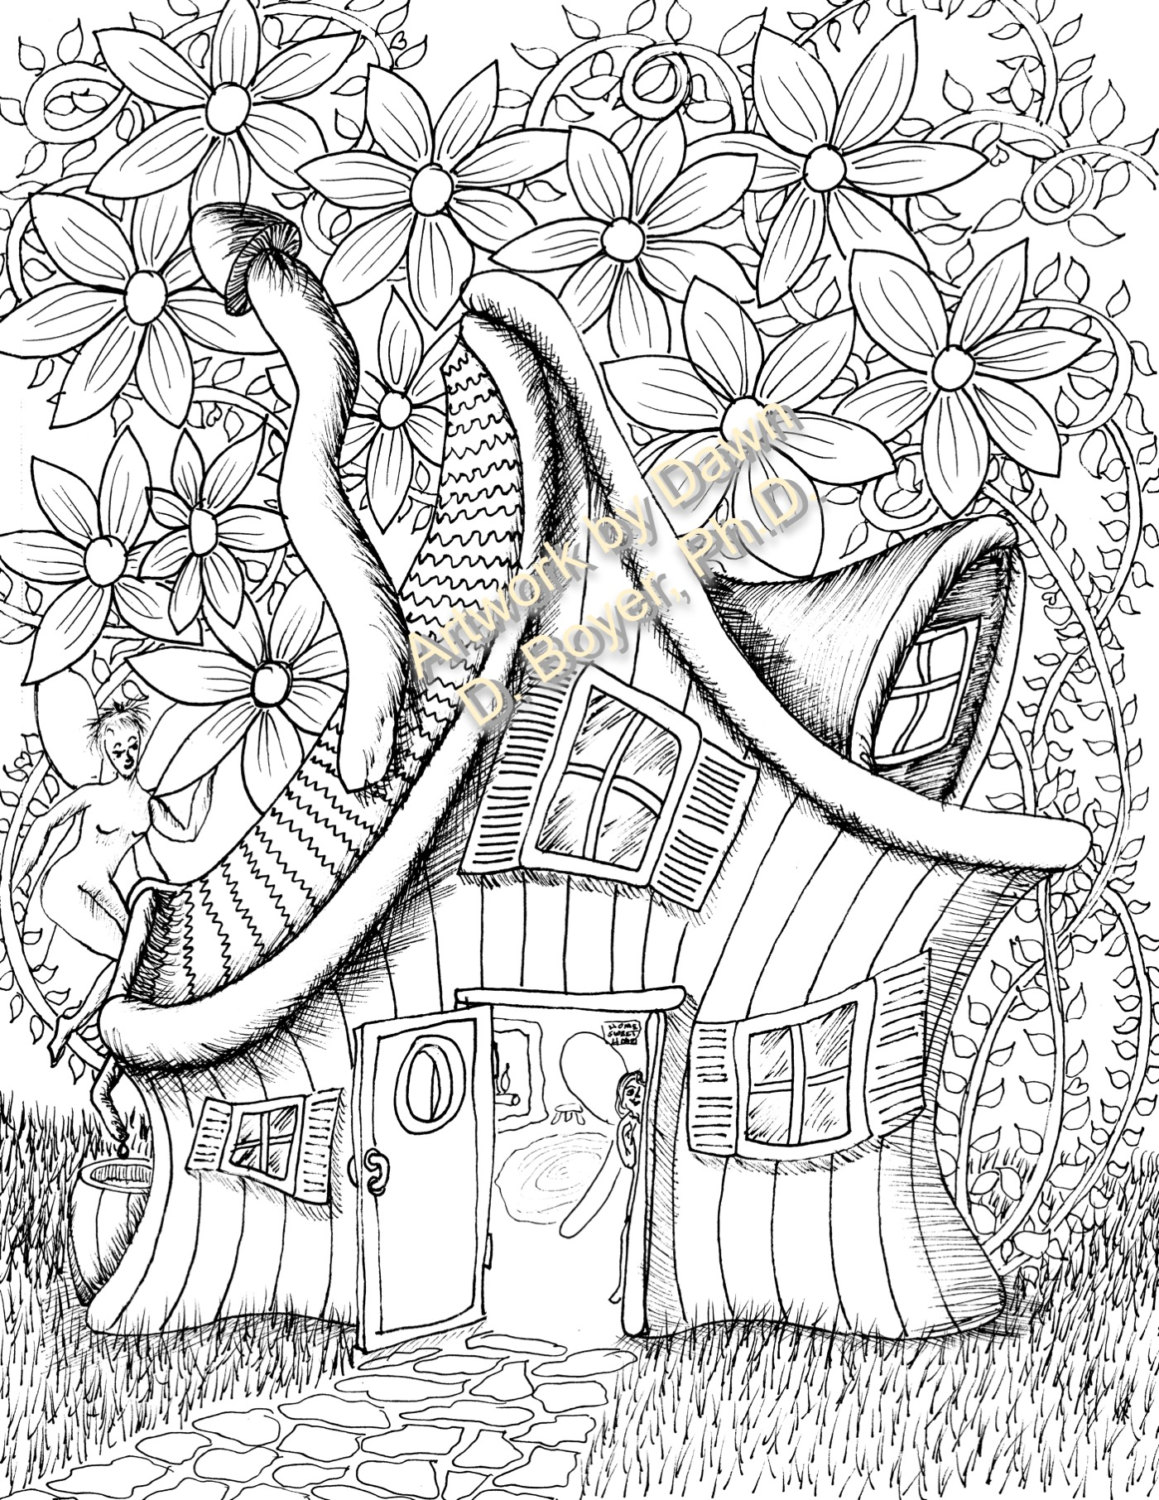 Lifetime Faerie Coloring Pages Fairy Houses And Doors Vol 3 4